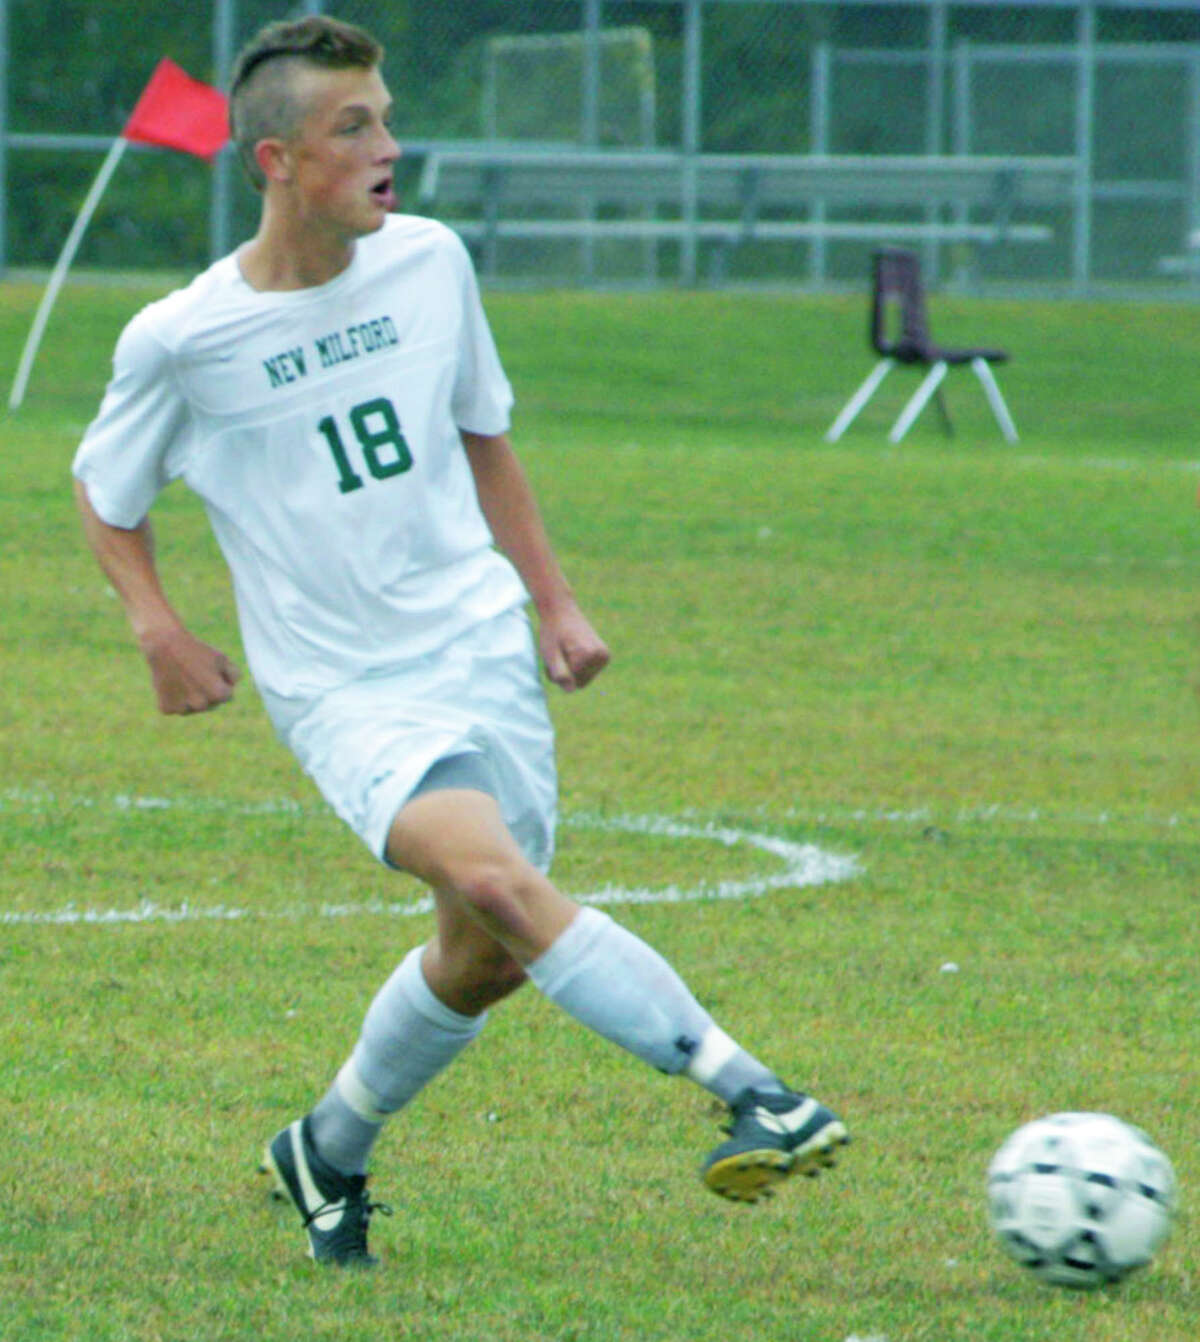 Cooper Knight of the Green Wave delivers a pass during New Milford High School boys' soccer's 2-1 victory over Pomperaug, Sept. 20, 2014 at NMHS.